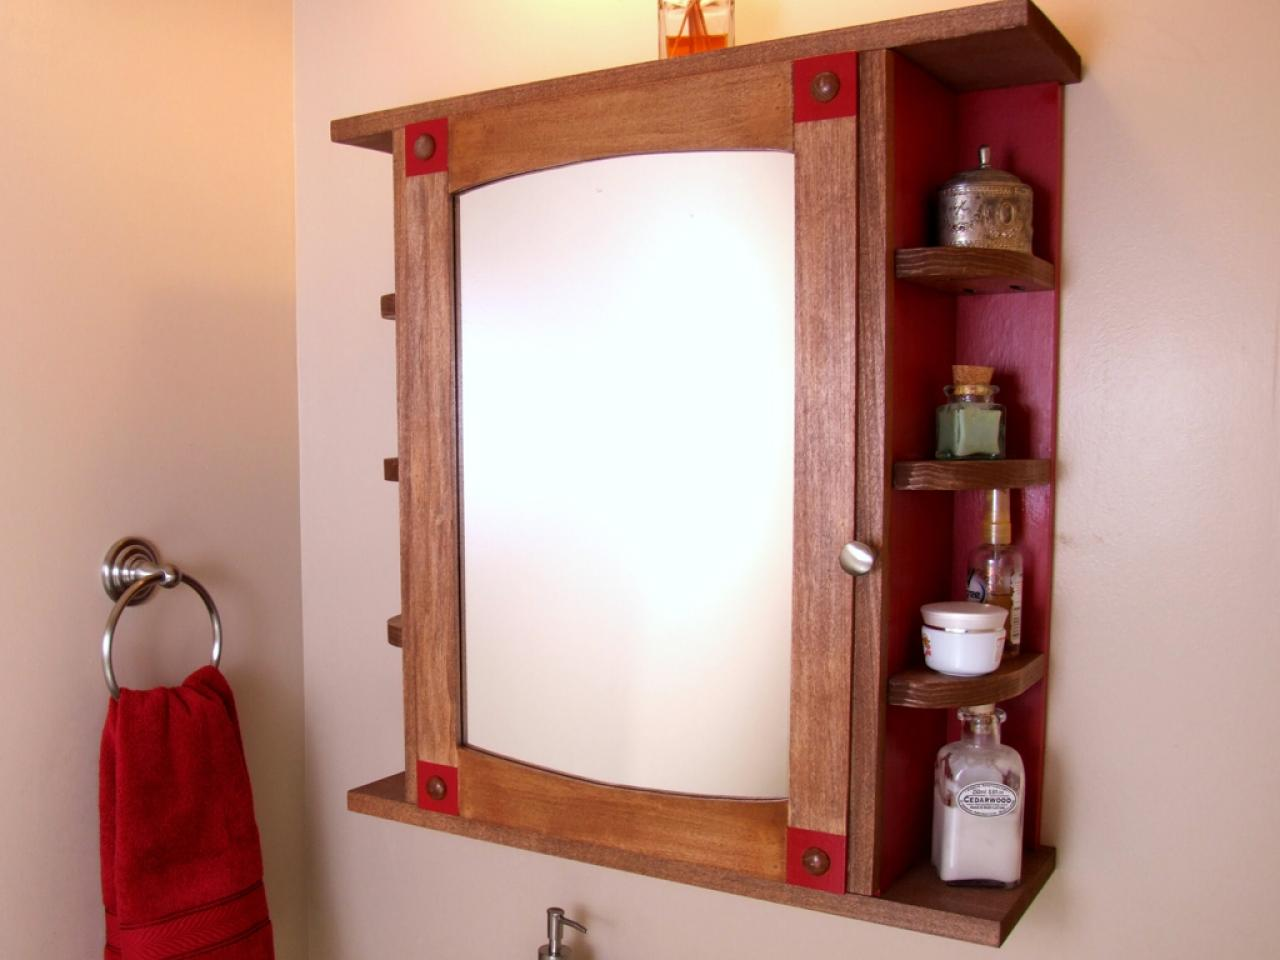 Remarkable DIY Medicine Cabinet 1280 x 960 · 81 kB · jpeg